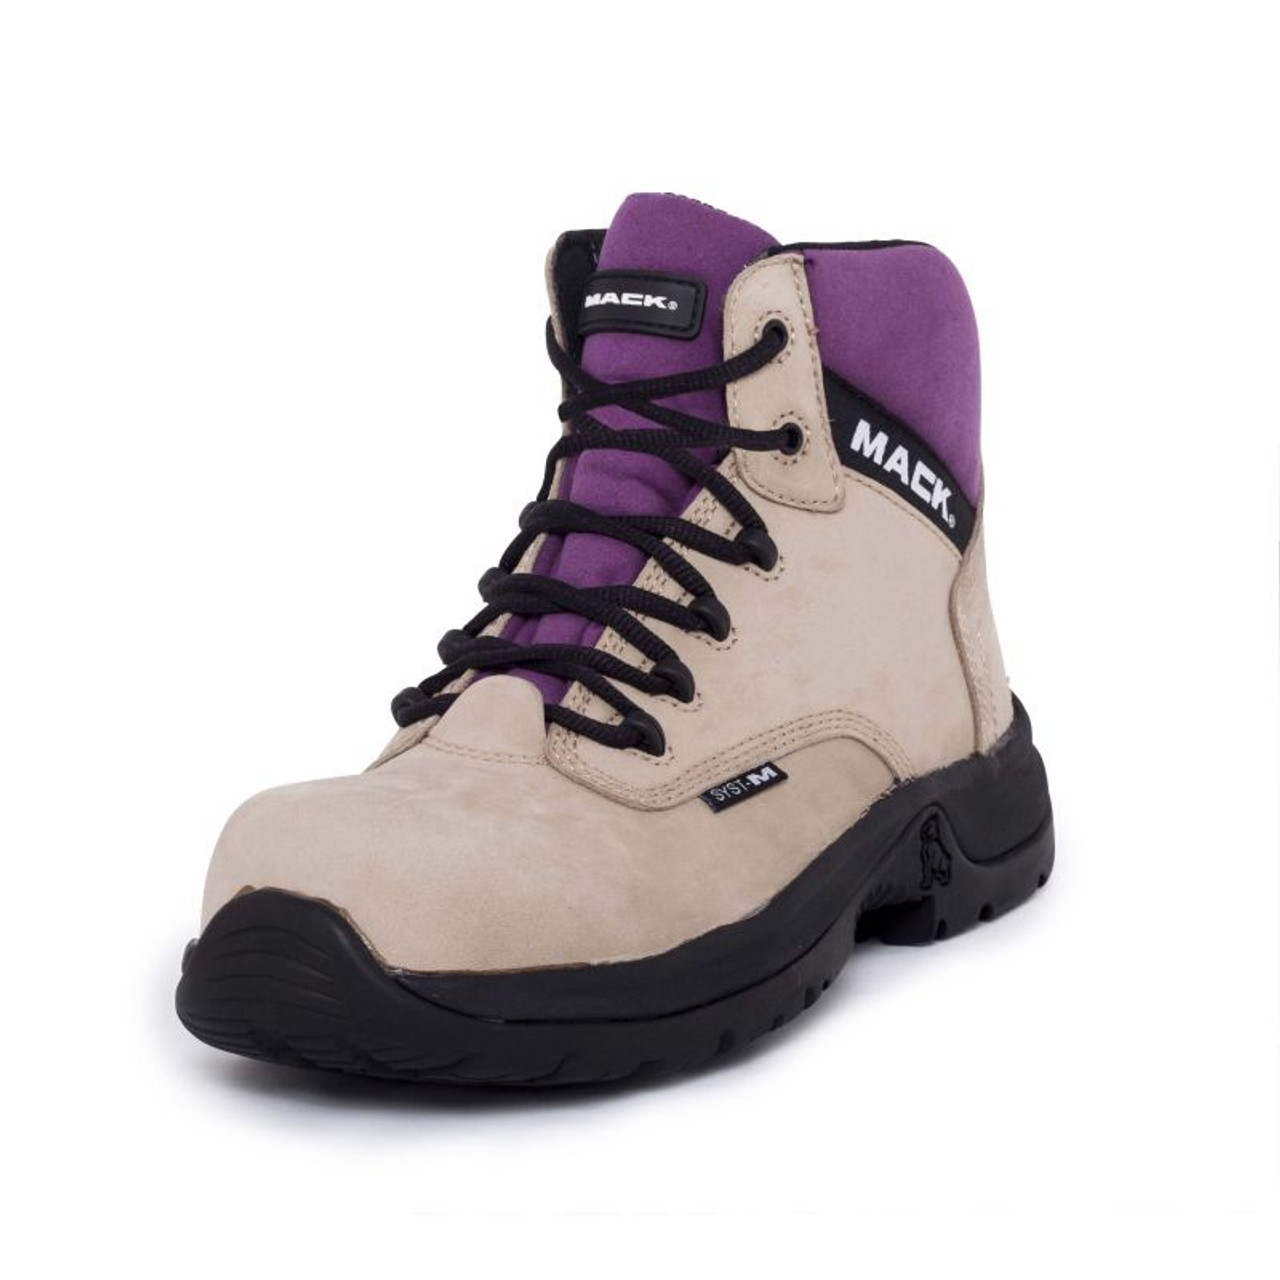 6a49b55e5a6 Mack Boots Axel Womens Metal Free Electrical Hazard Safety Boots ...